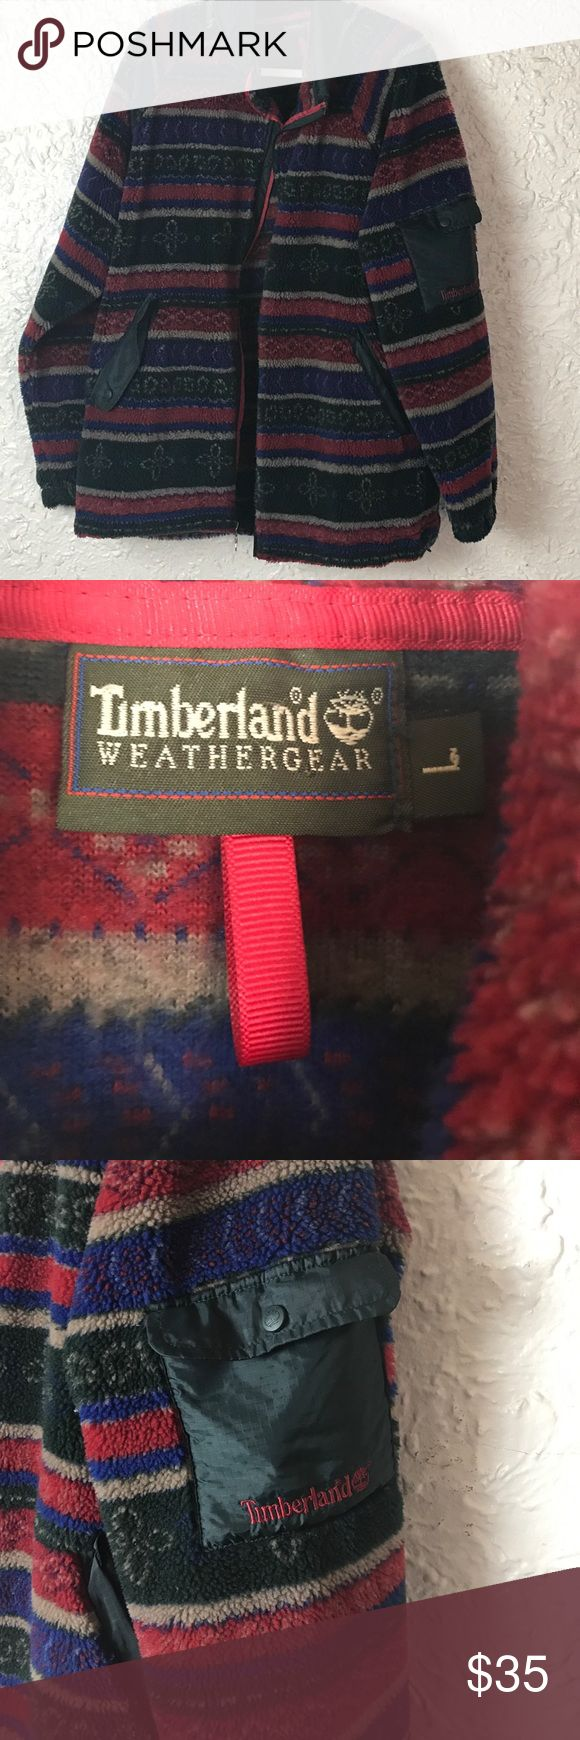 Authentic Timberland Weather Gear  Jacket size L This jacket is everything! First of all , it's super warm. It has pockets on the inside and outside and also a sleeve pocket. How dope is that?!?!? It has a sturdy zipper and looks amazing! Timberland Jackets & Coats Performance Jackets